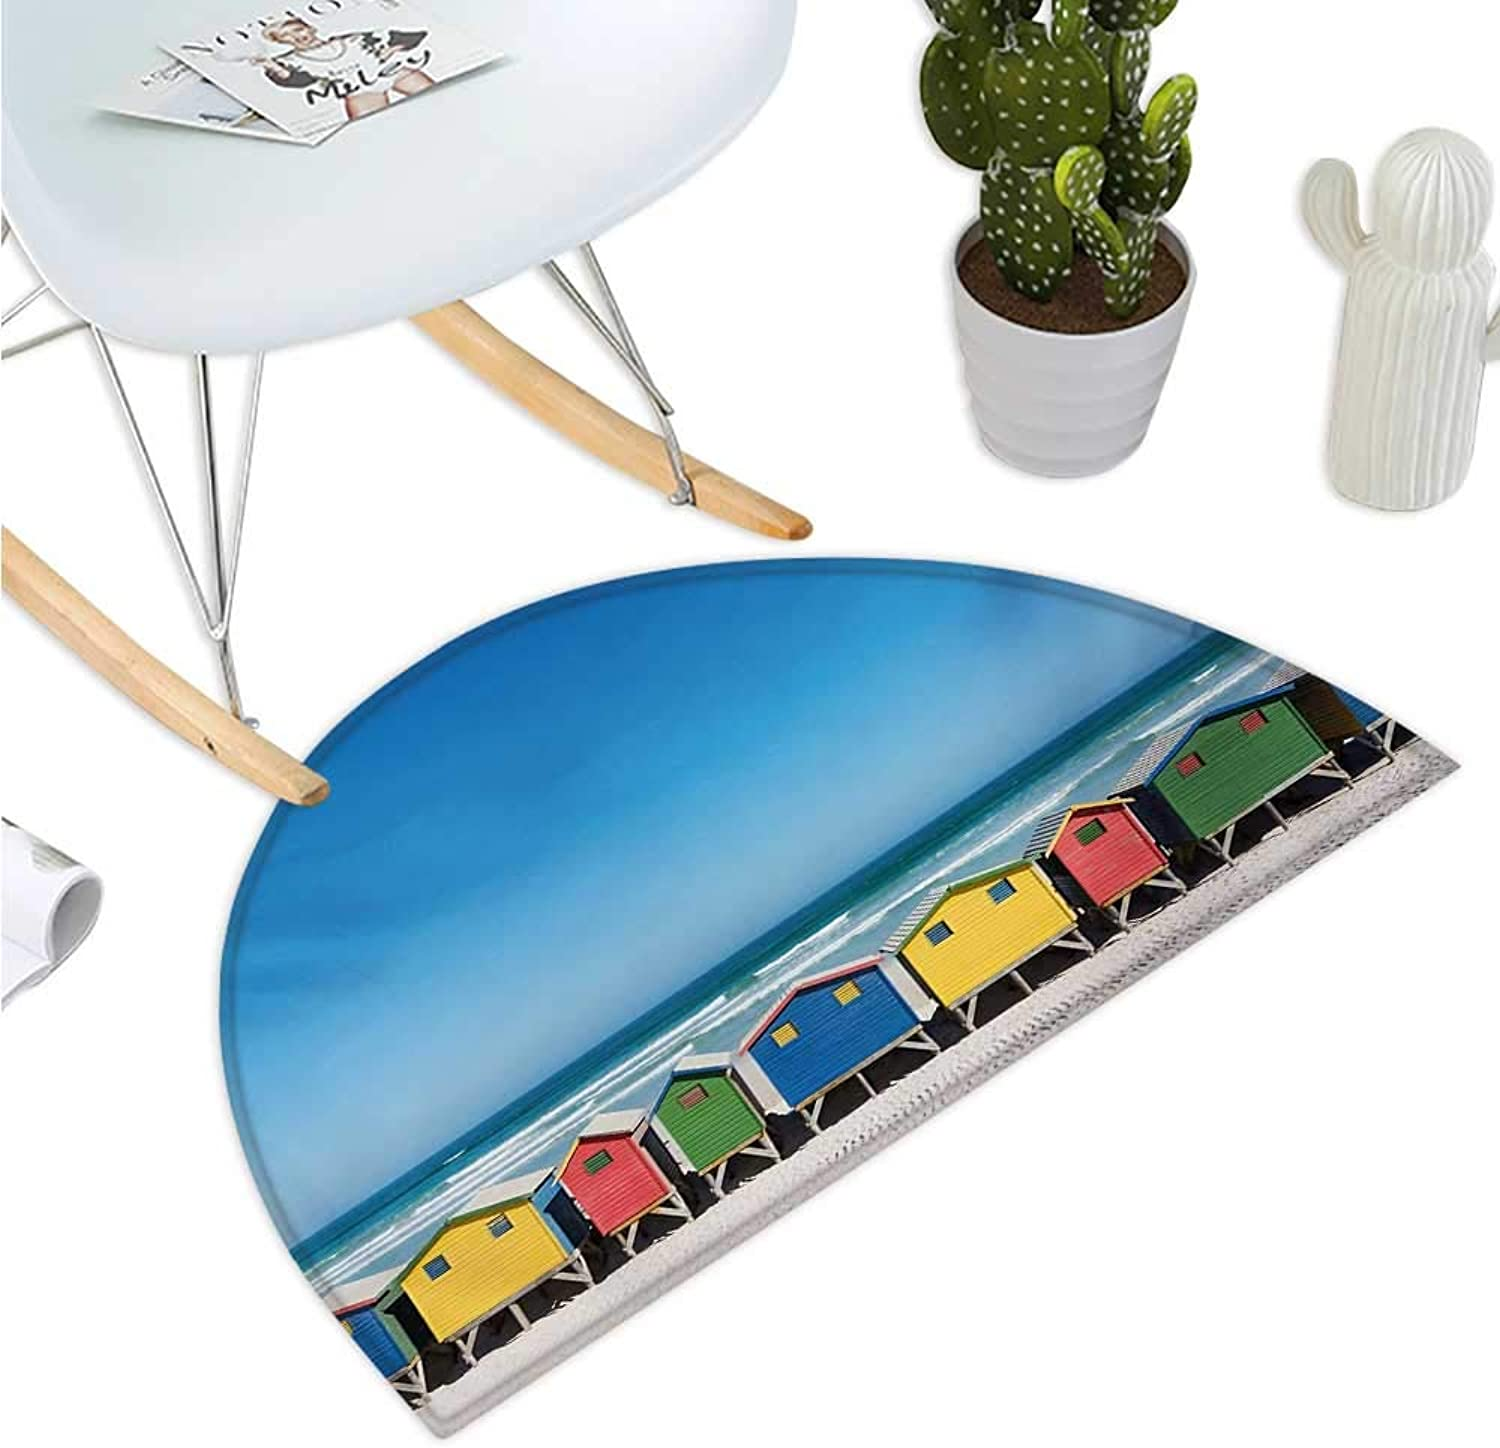 Travel Half Round Door mats colorful Bathhouses at Muizenberg Cape Town South Africa Standing in a Row Touristic Bathroom Mat H 35.4  xD 53.1  Multicolor